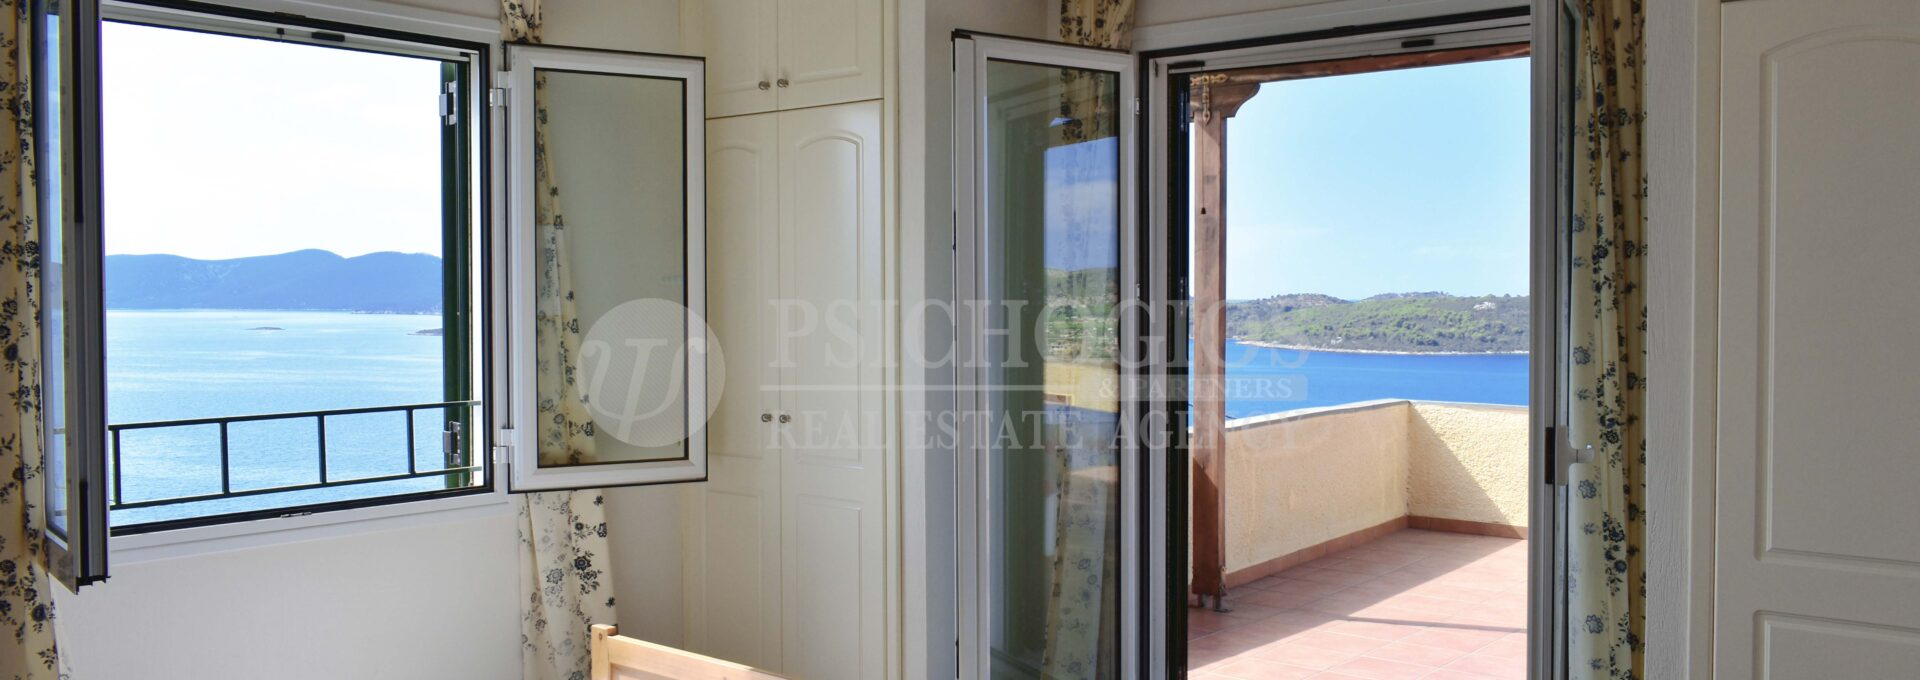 for_sale_house_223_square_meters_plot_730_square_meters_view_to_the_sea_ermioni_greece (11)